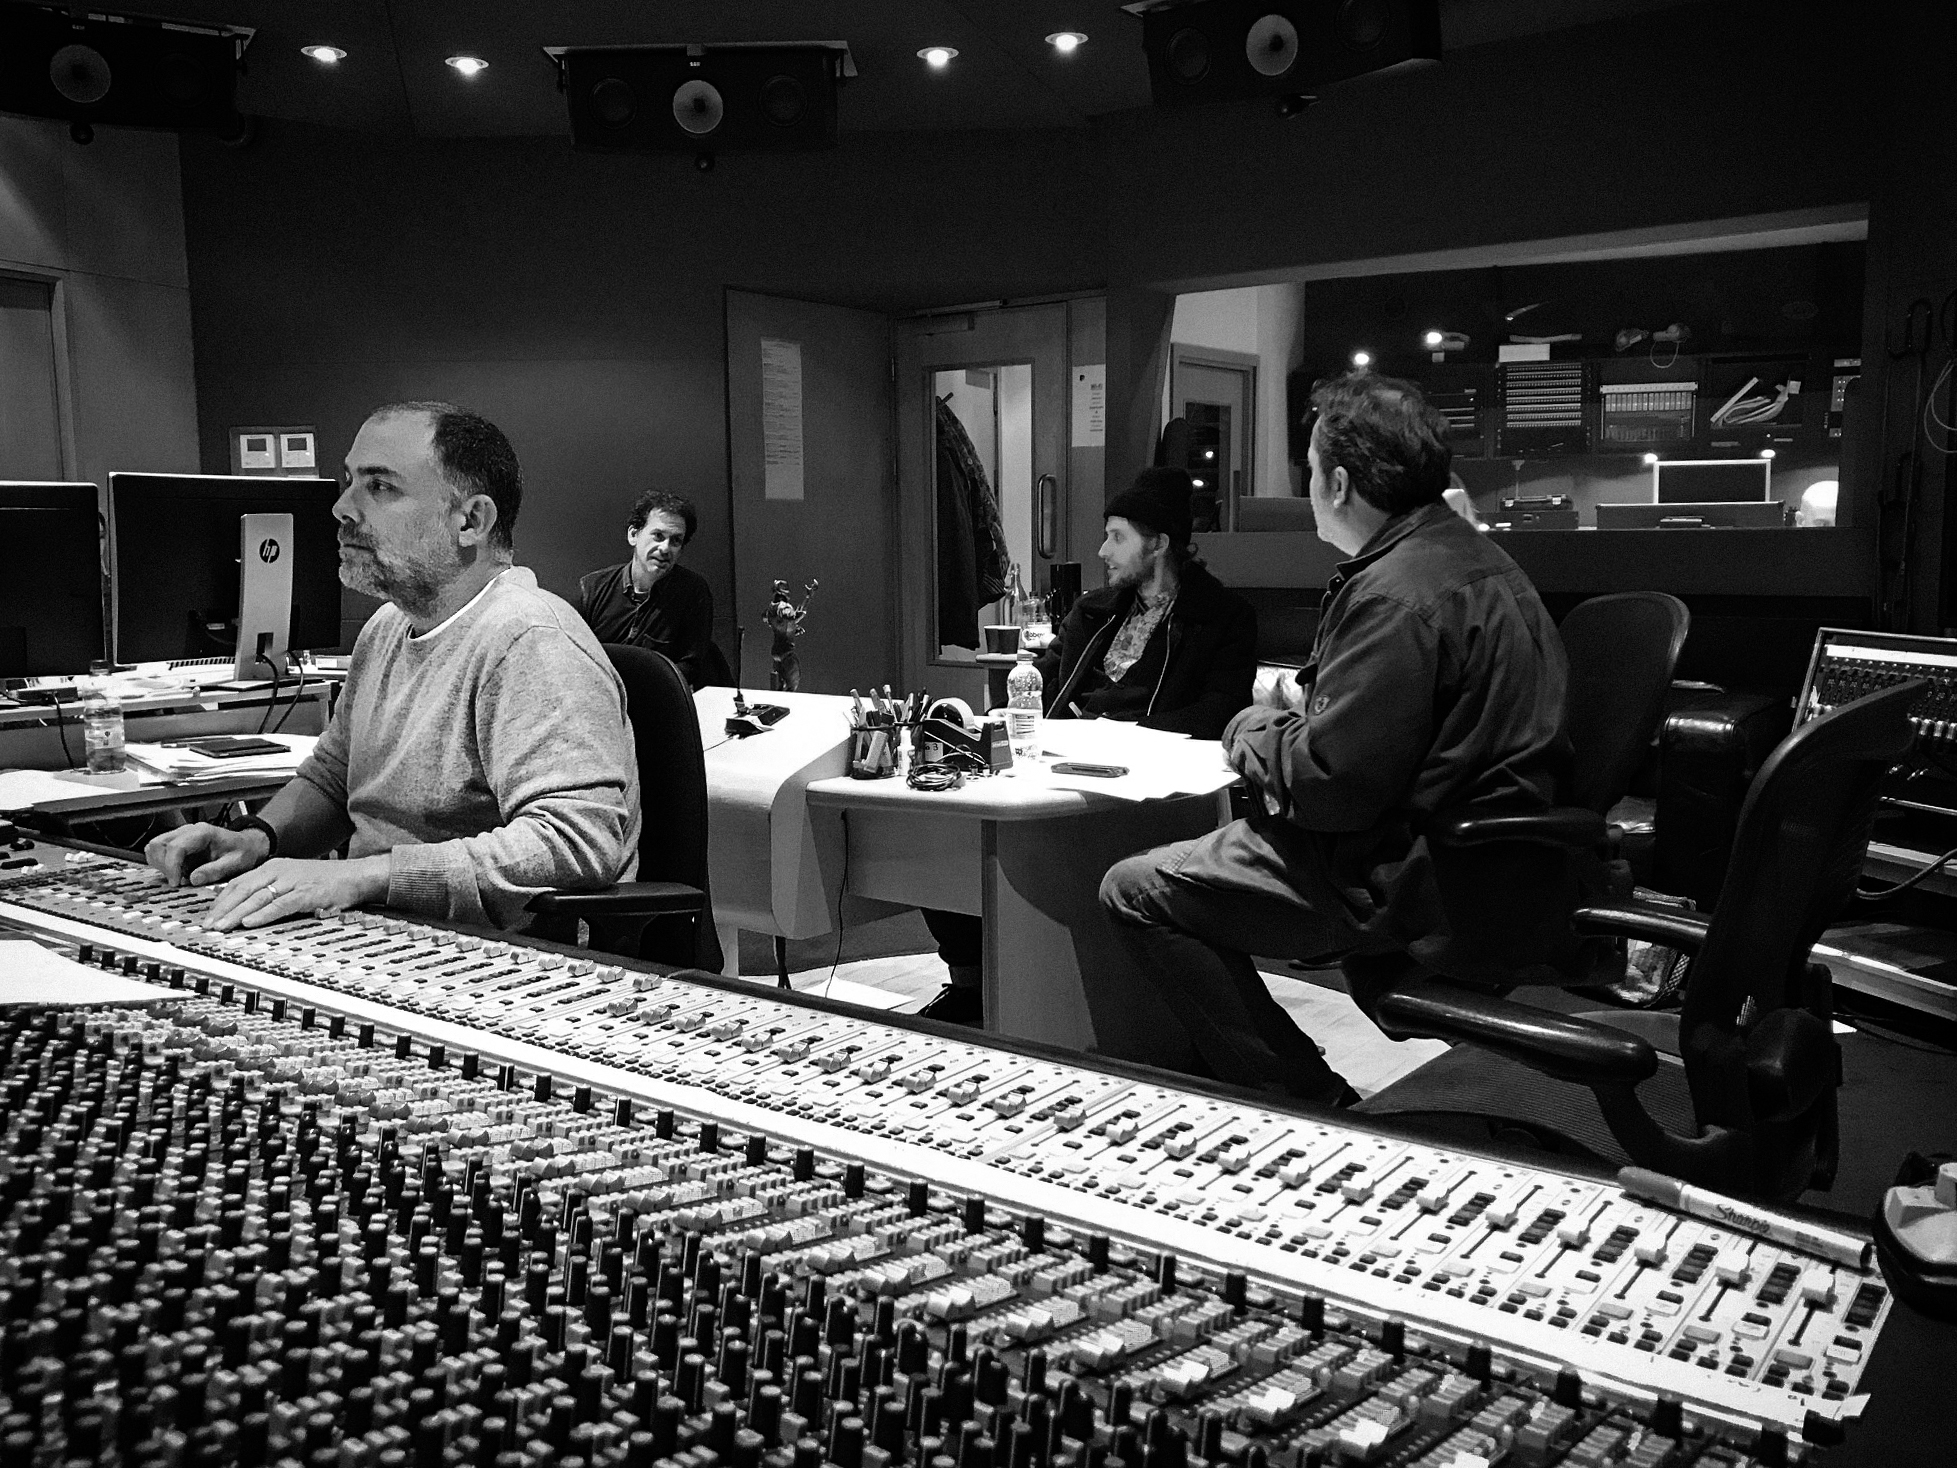 L to R: Chris Fogel, Score Recording & Mixing Engineer; Ron Webb, Music Editor; Ludwig Göransson, Composer; Steve Durkee, Marvel Score Supervisor. Photo credit: Joseph Shirley